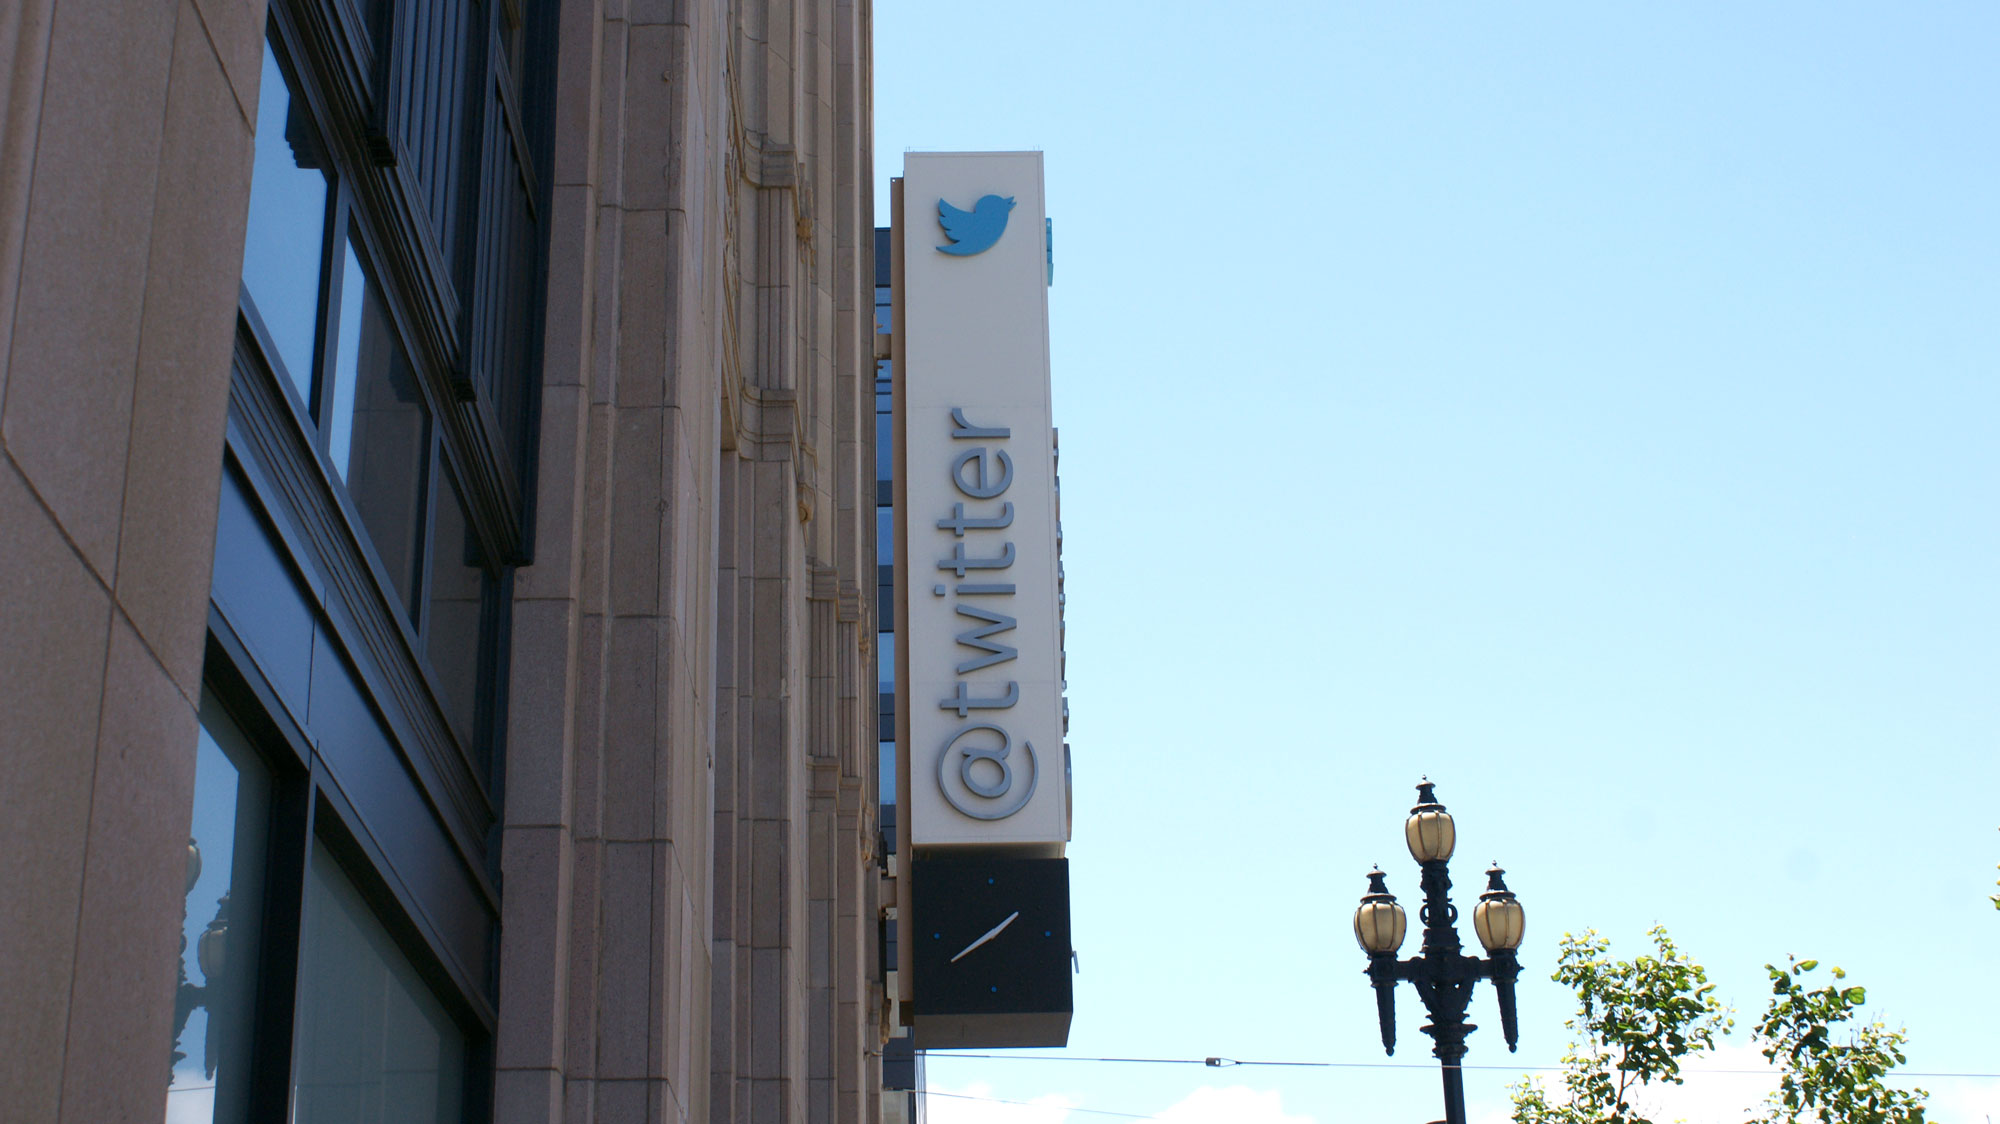 Twitter Invests $10M in MIT Laboratory for Social Machines